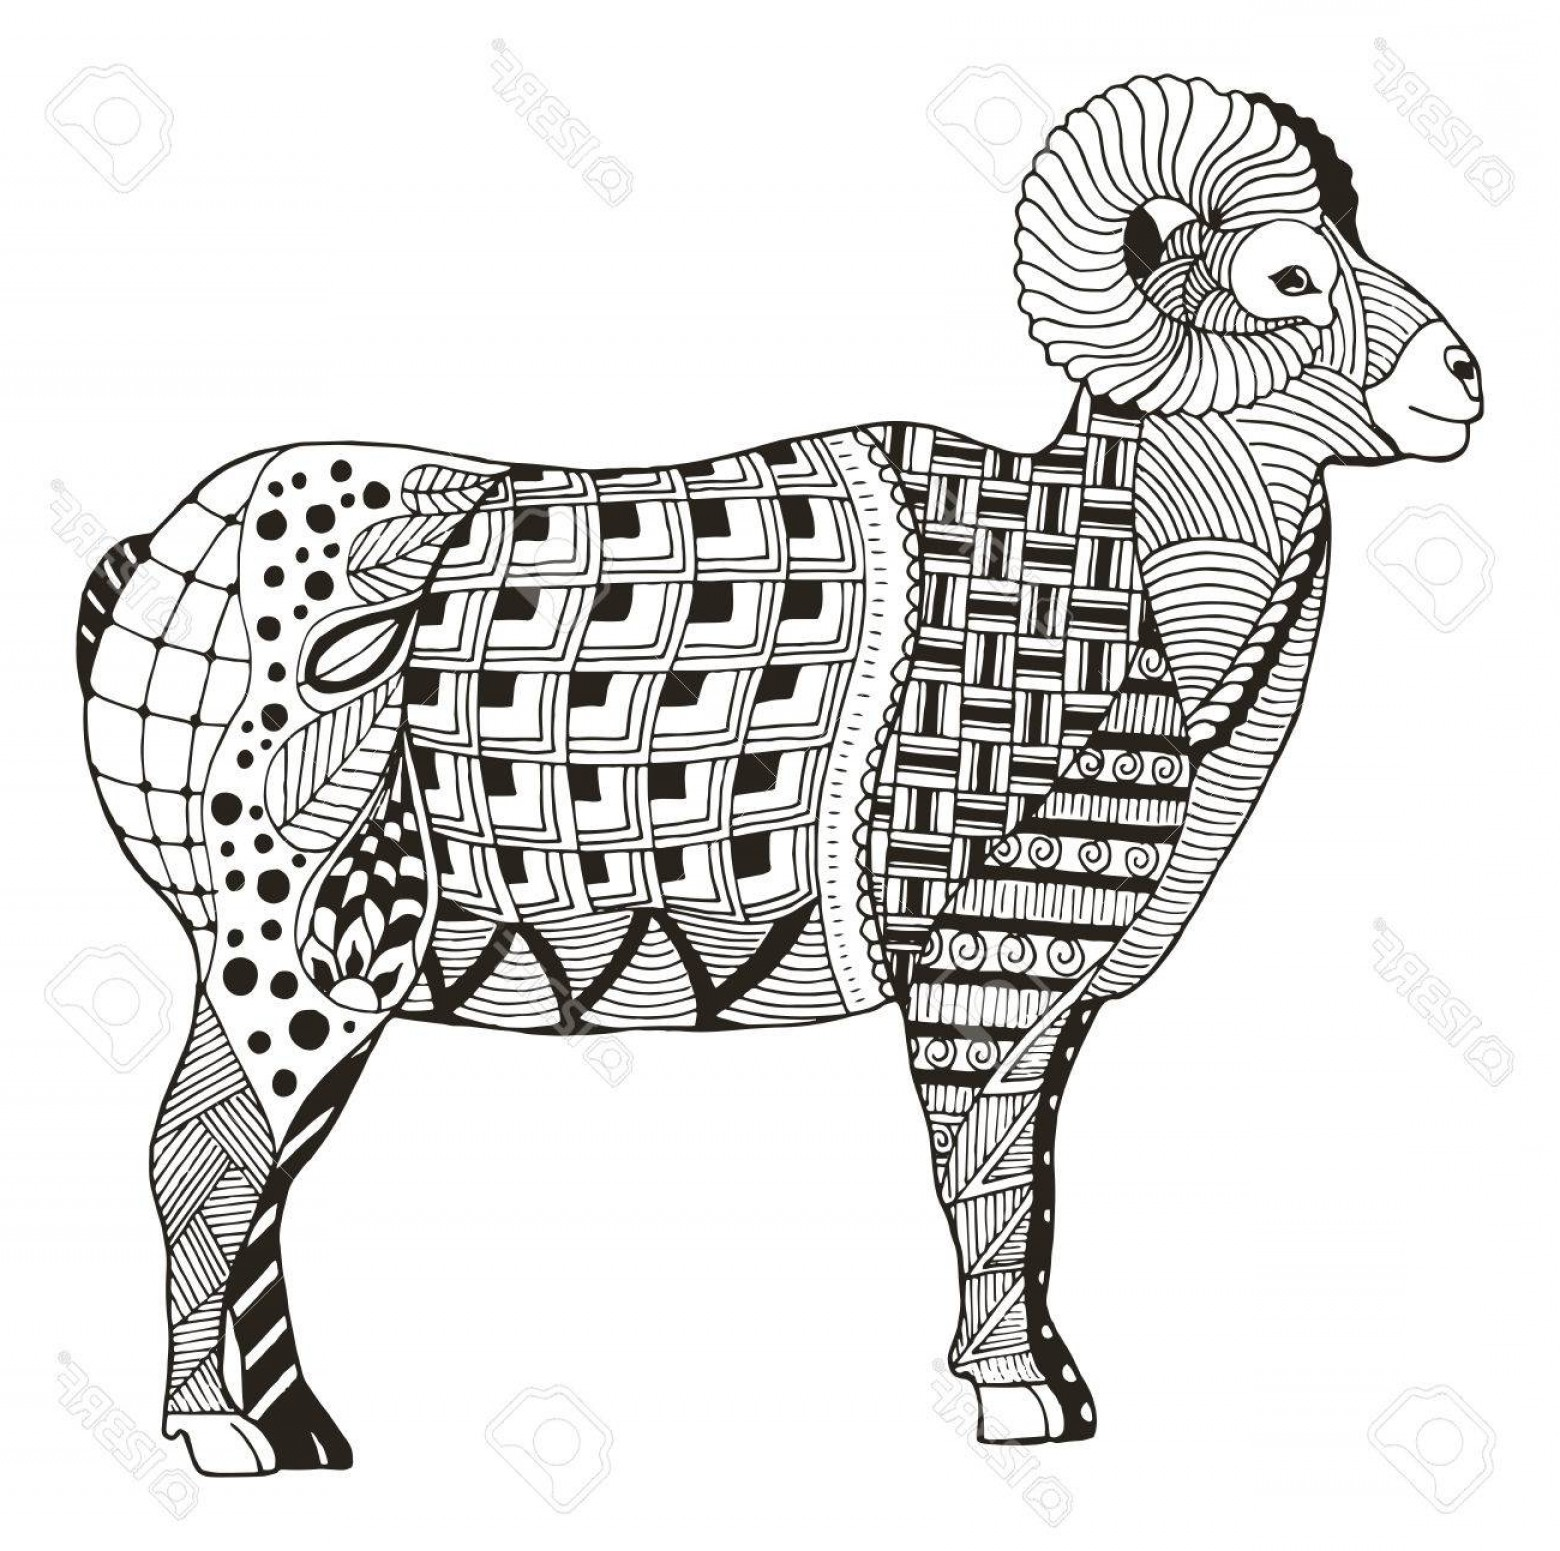 Rocky Mountain Line Art Vector: Photostock Vector Male Rocky Mountain Bighorn Sheep Ram Standing Zentangle Stylized Vector Illustration Freehand Penci